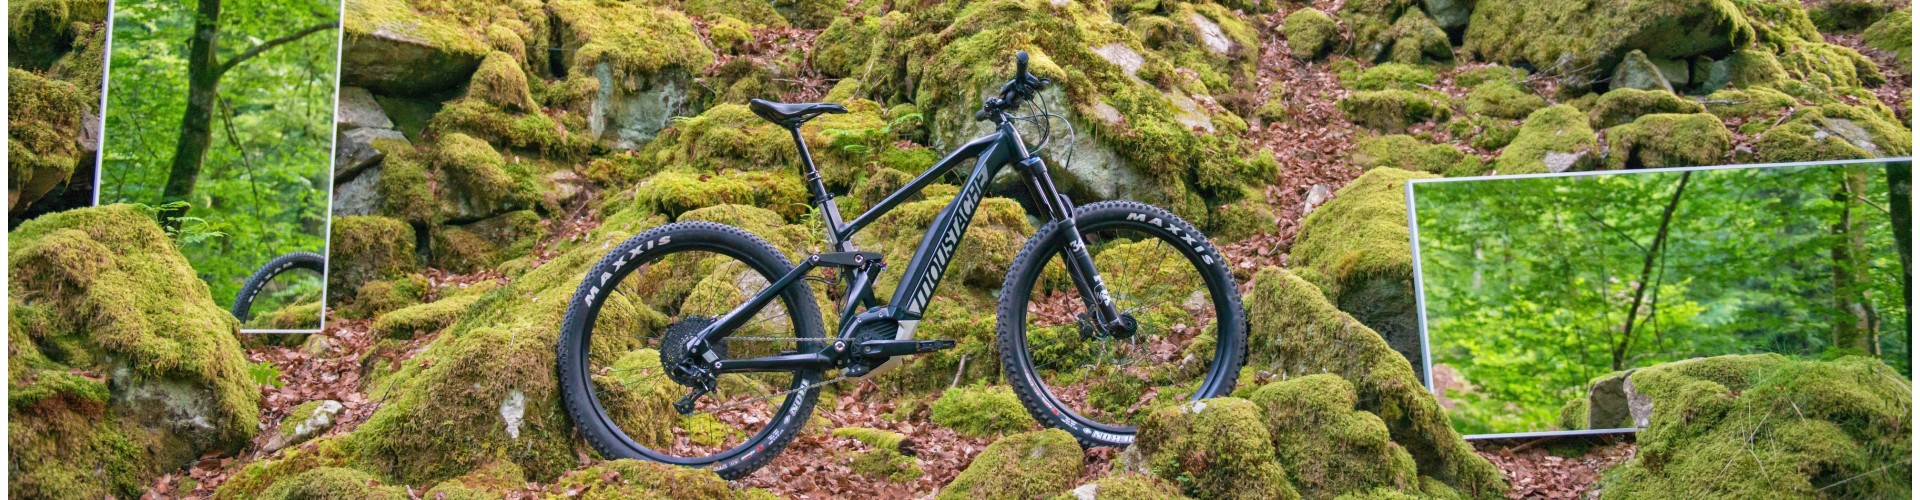 Moustache Hidden Power eBikes Now in Stock